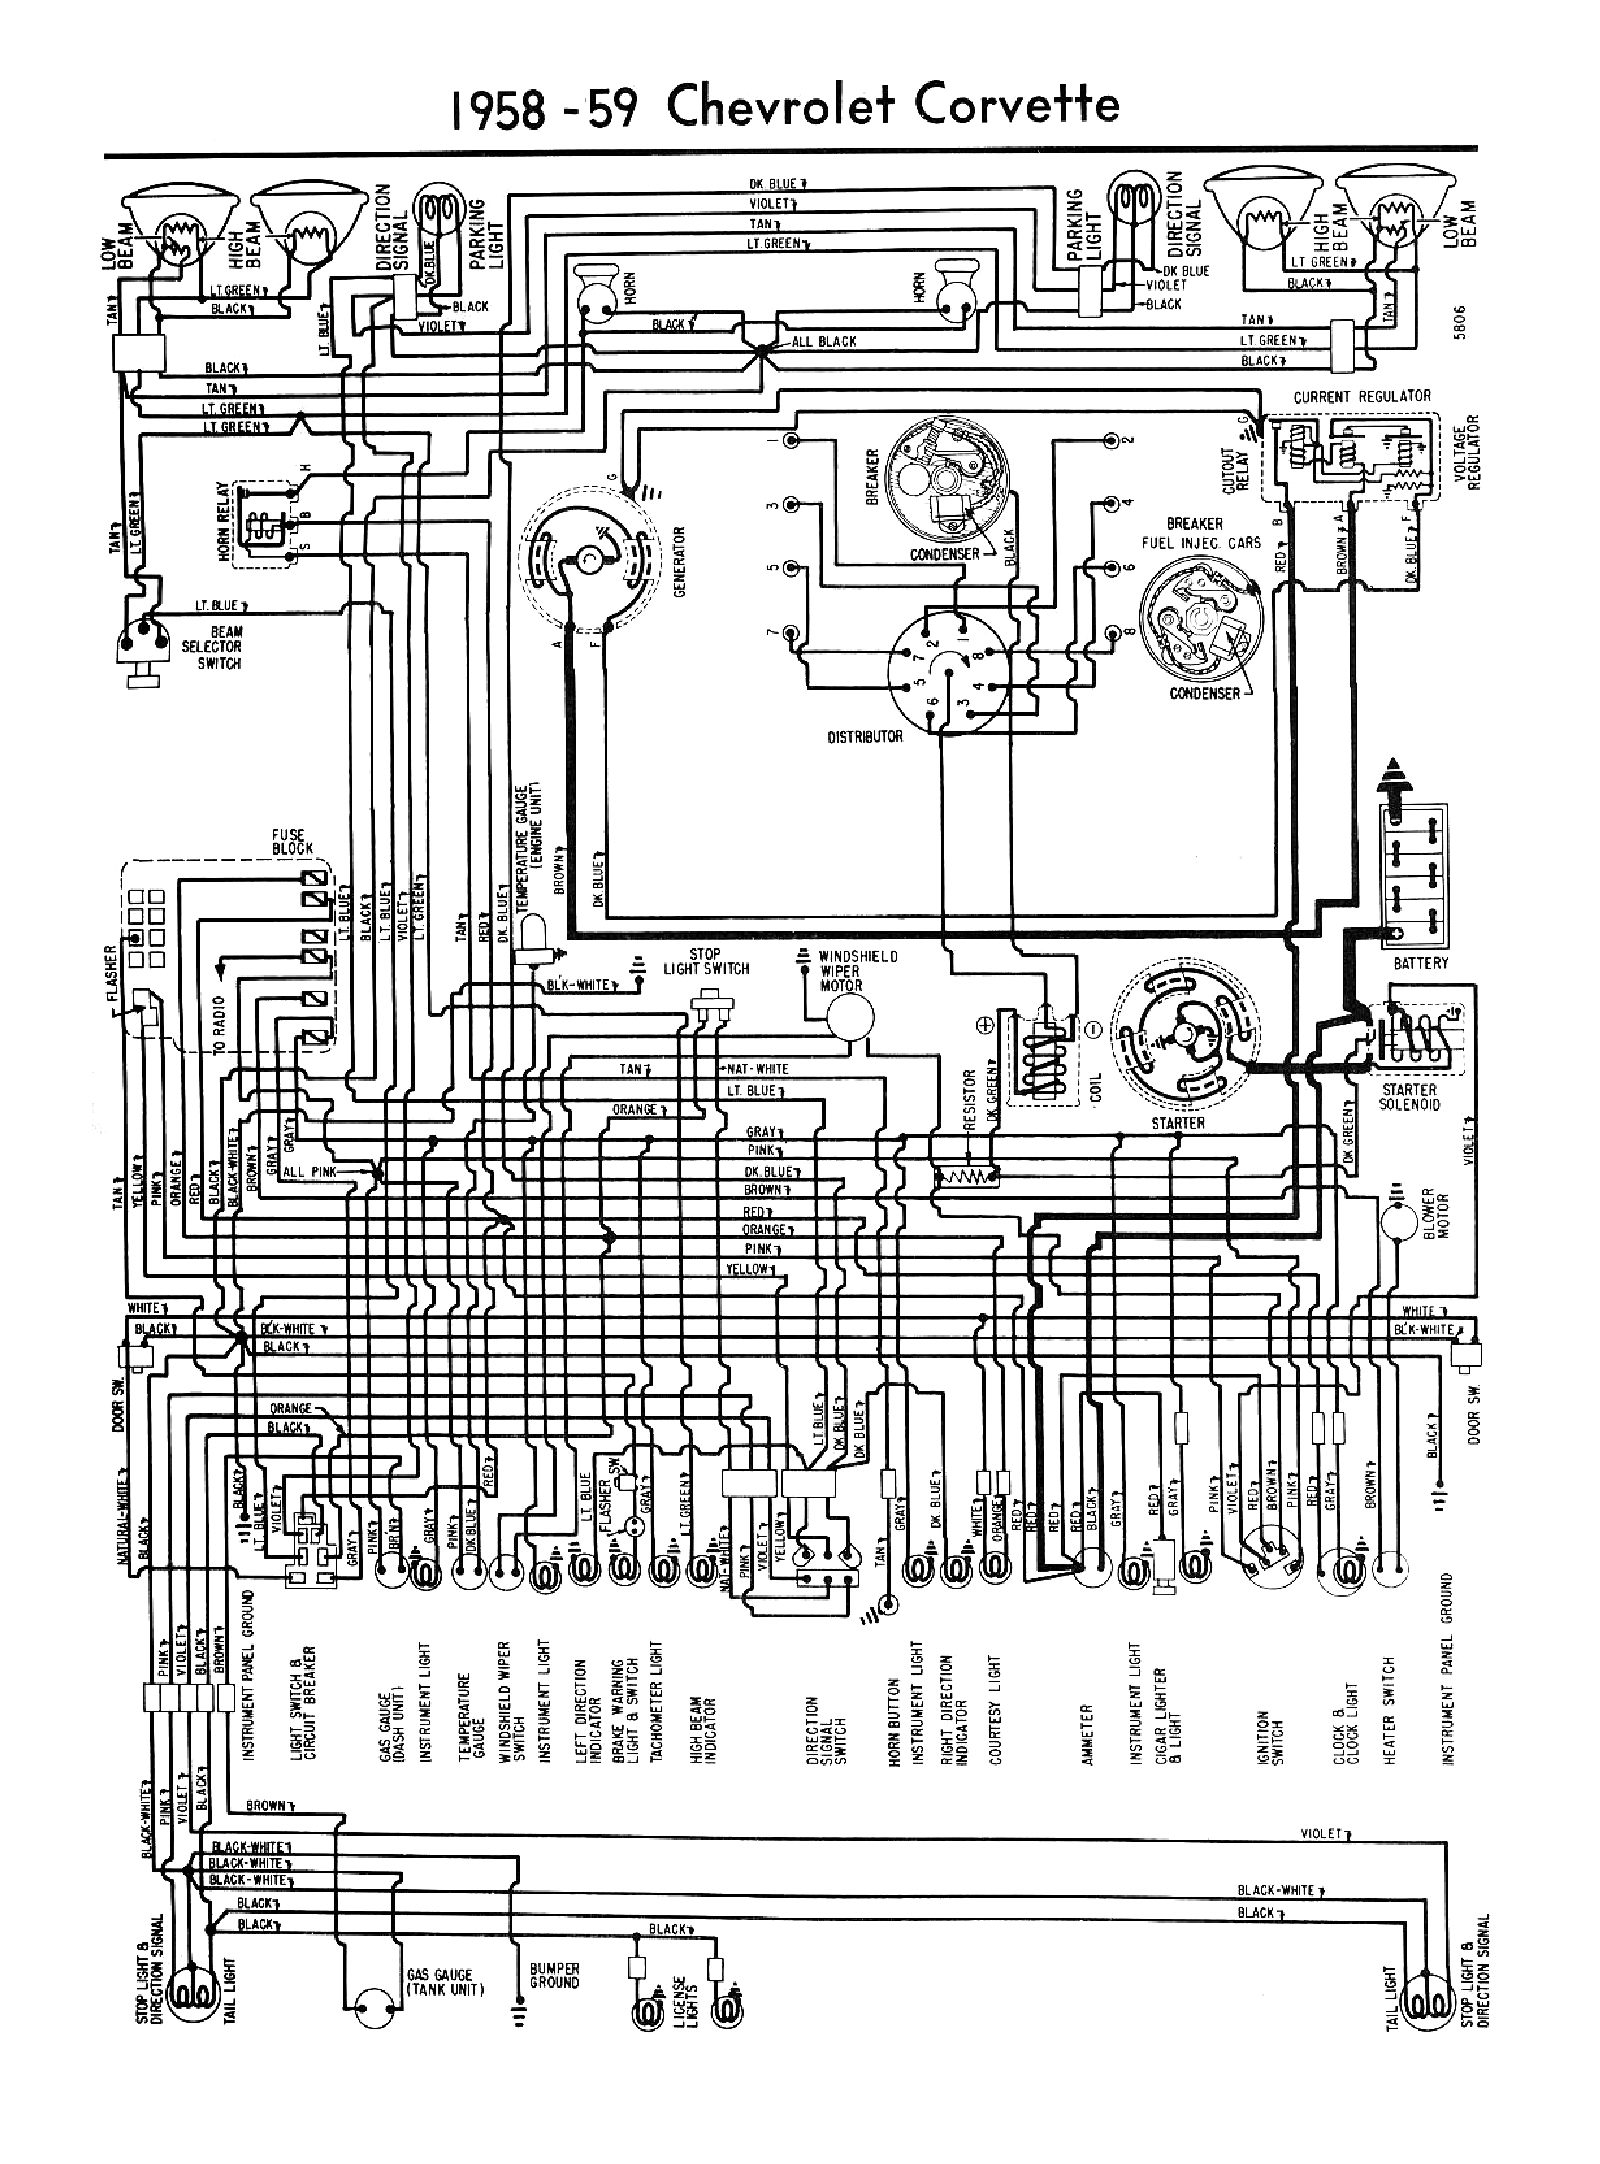 79 trans am engine compartment wiring diagram  79  get